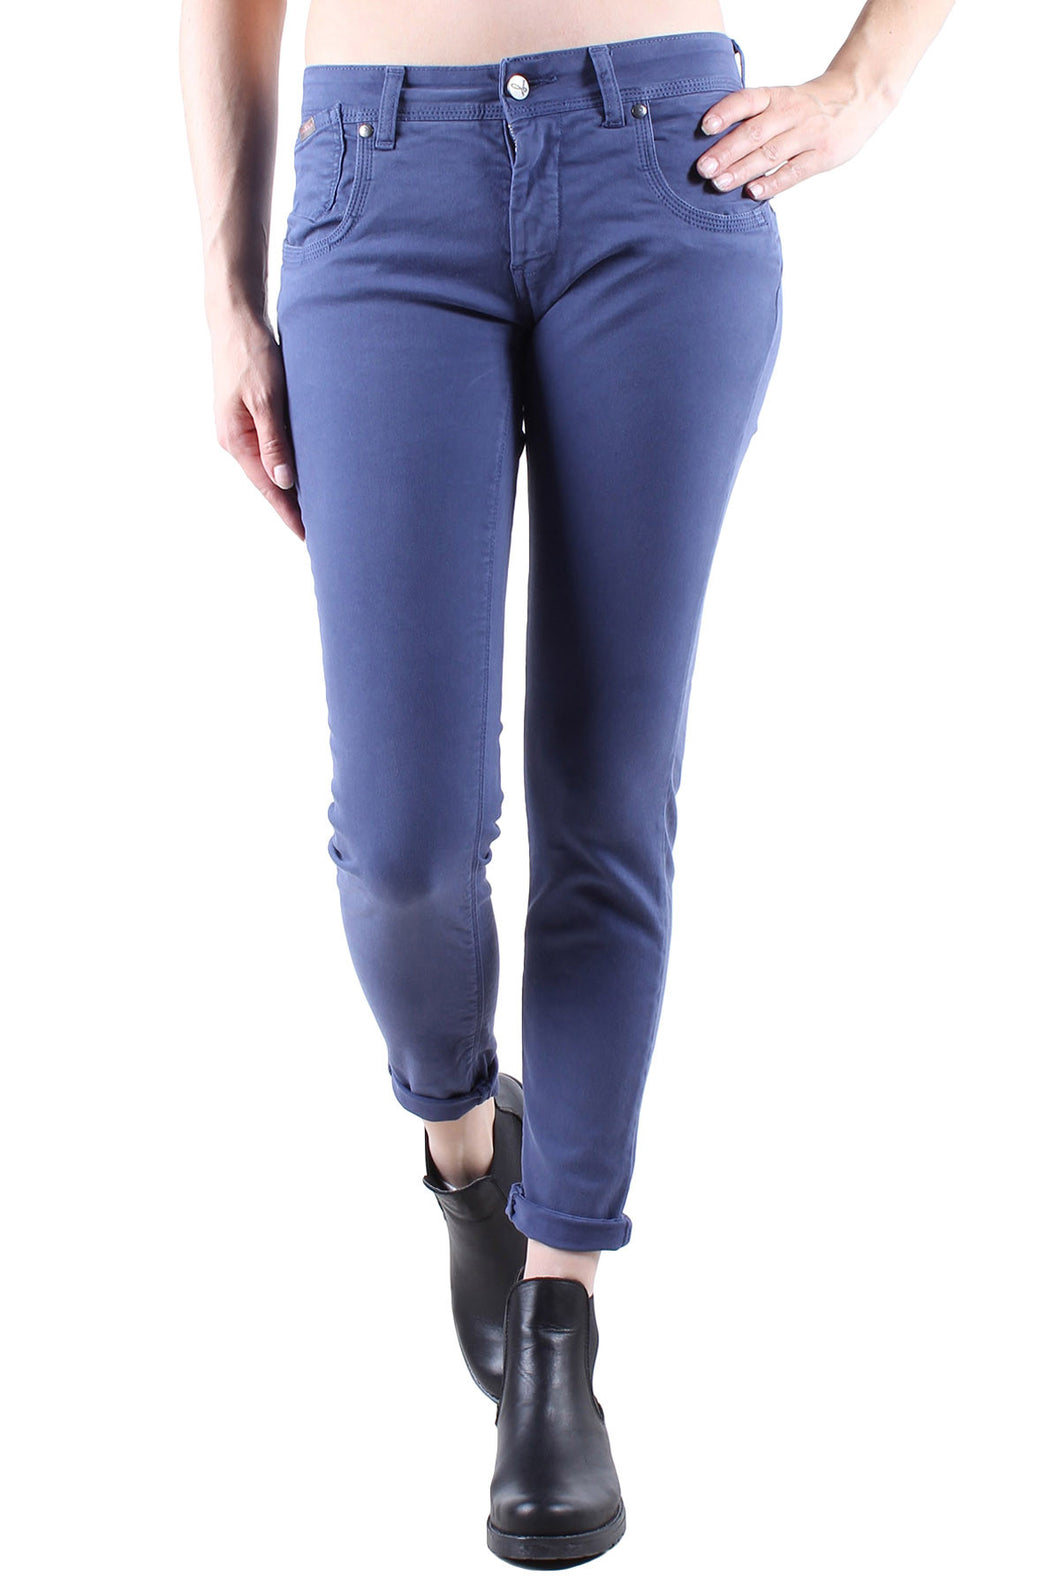 Sexy Woman  Women Trousers - SisBrothers